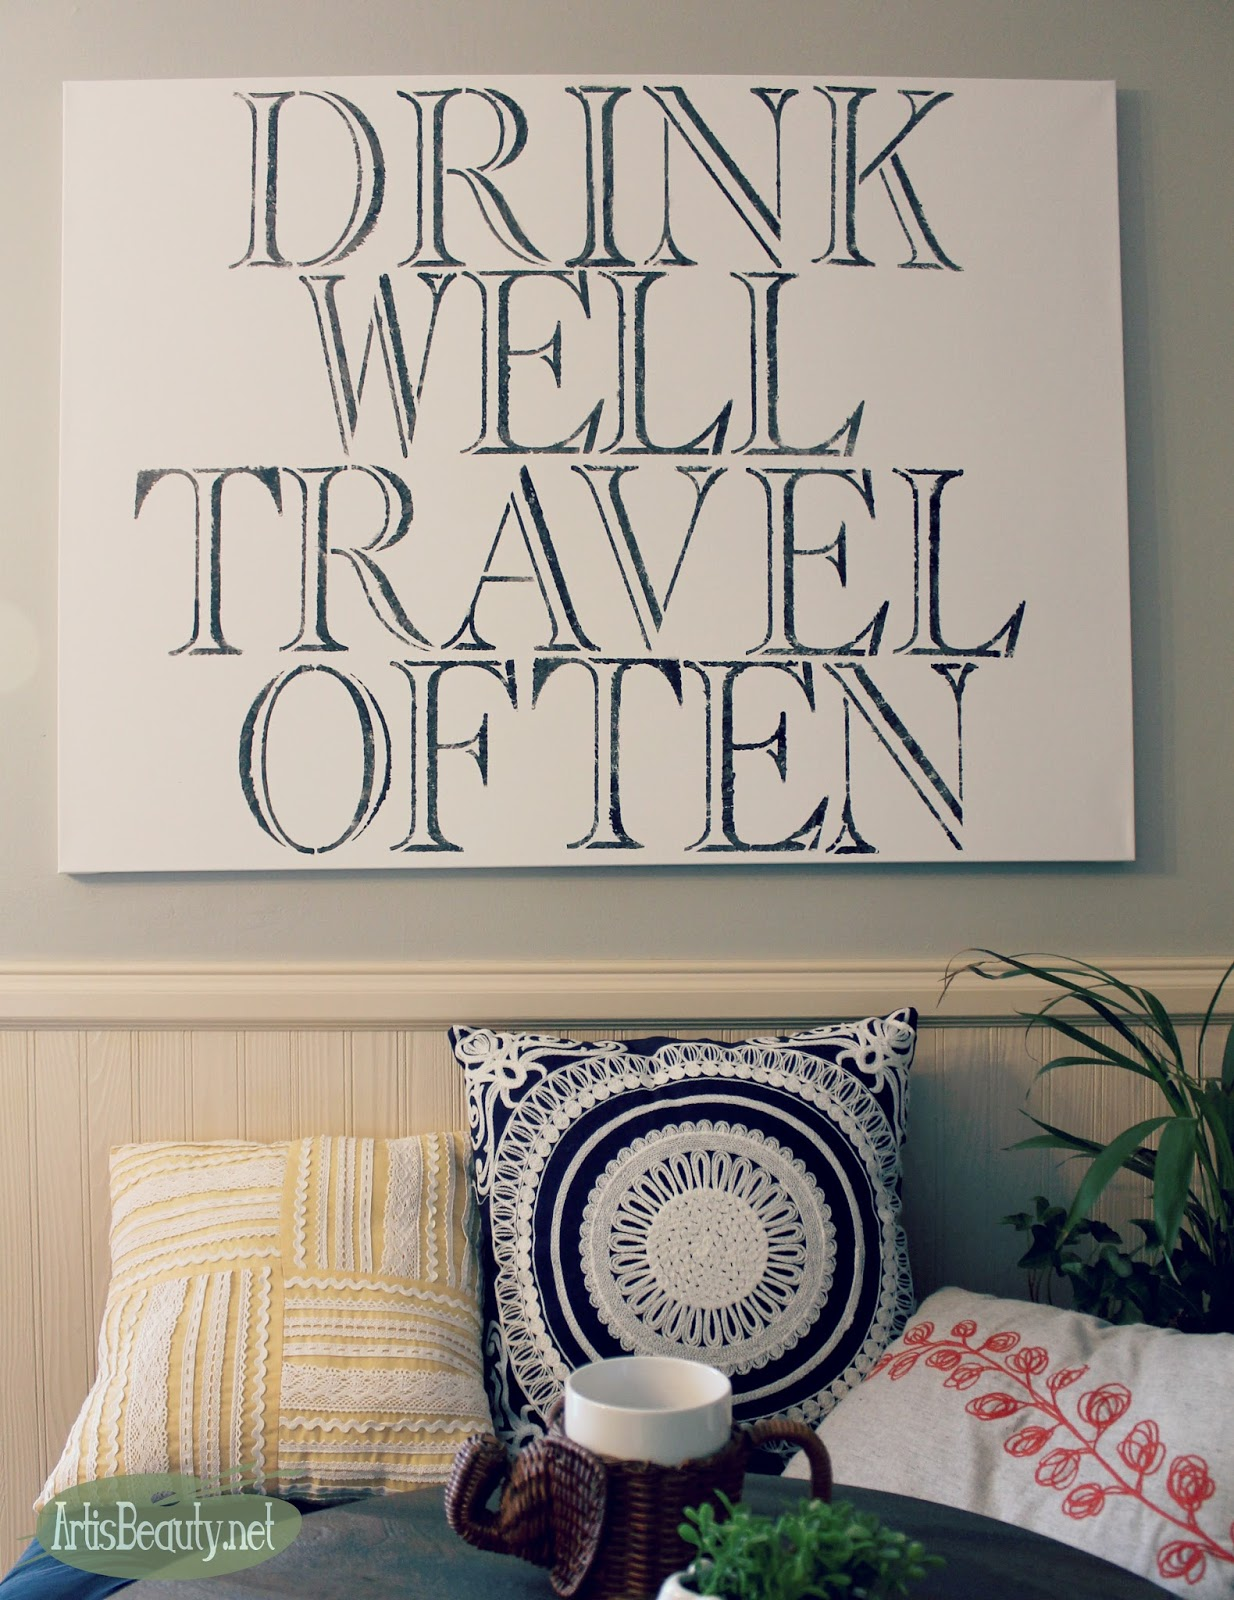 Art is beauty diy quote art without a cutting machine drink well travel often boho word art eclectic home decor do it yourself diy wall art solutioingenieria Gallery